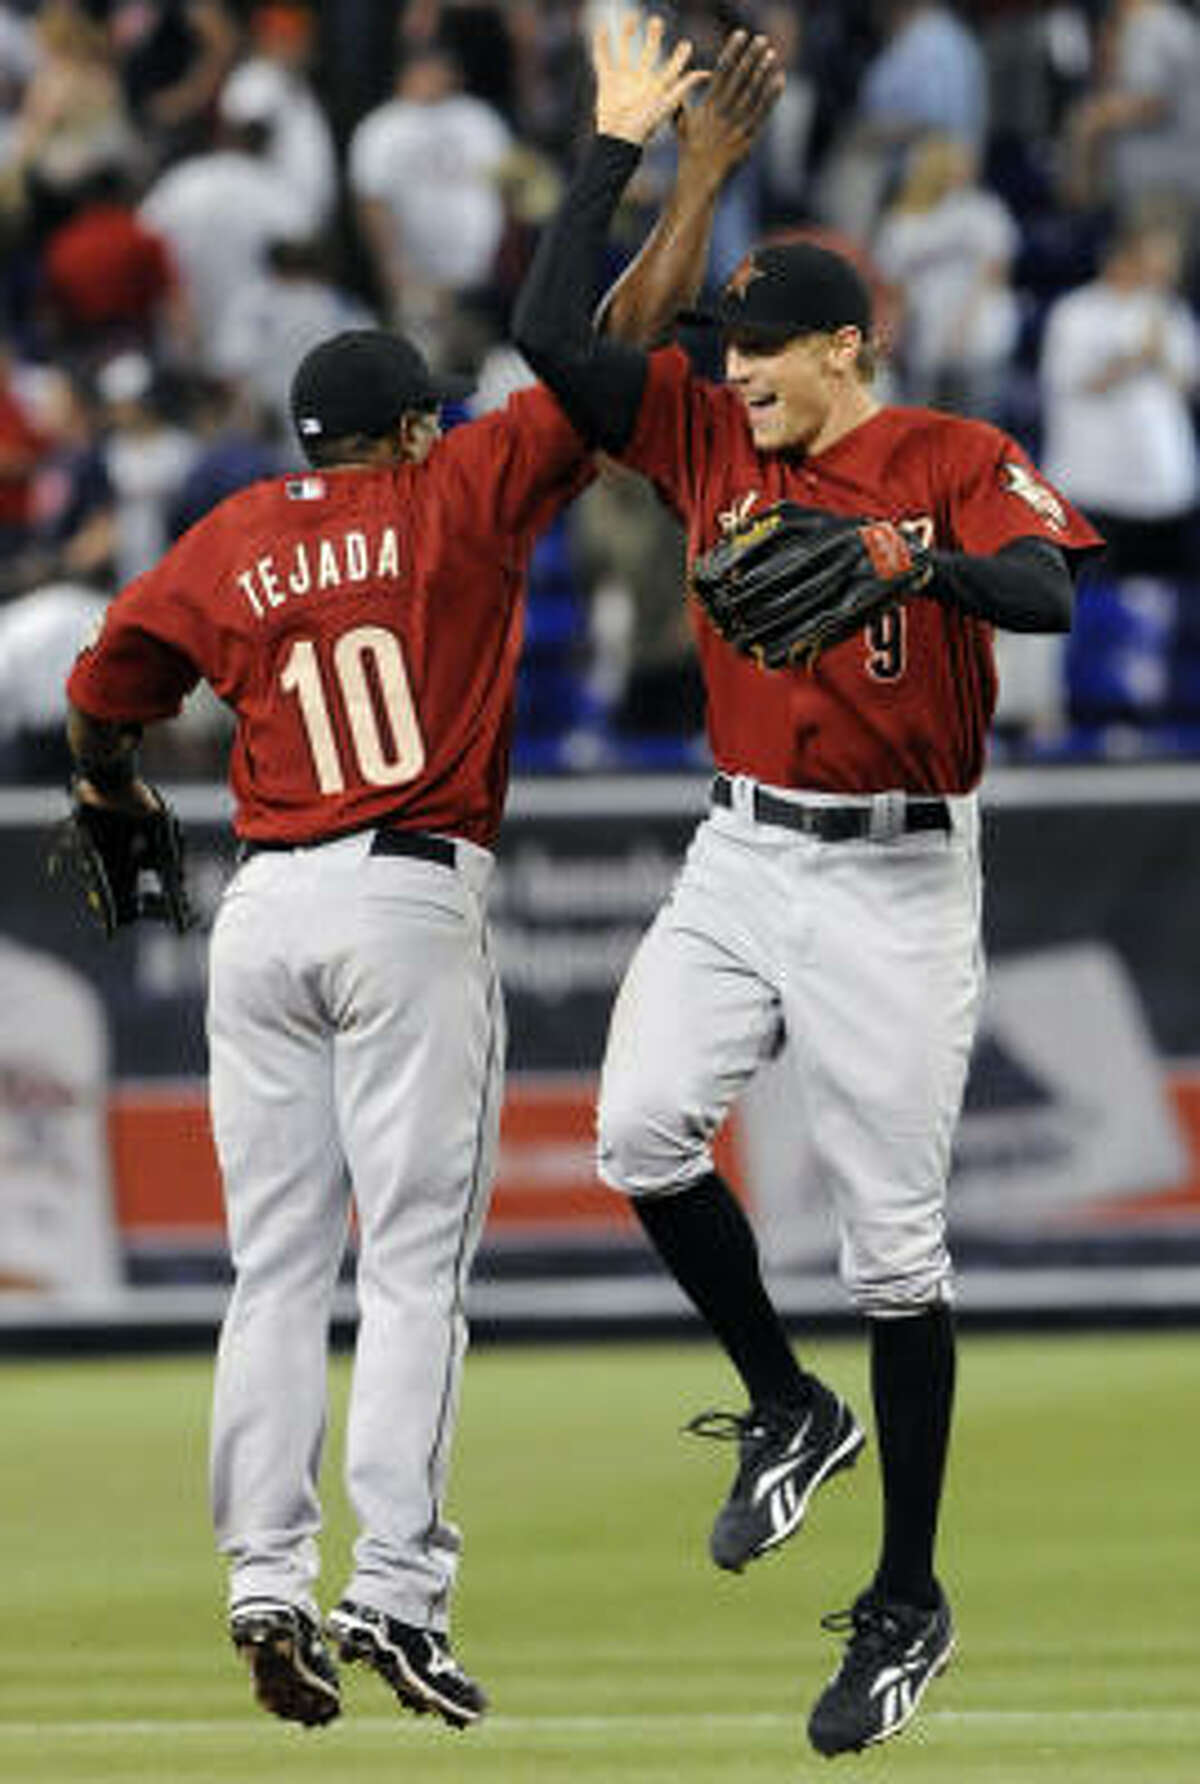 Shortstop Miguel Tejada and right fielder Hunter Pence will represent the Astros at the July 14 All-Star Game in St. Louis.